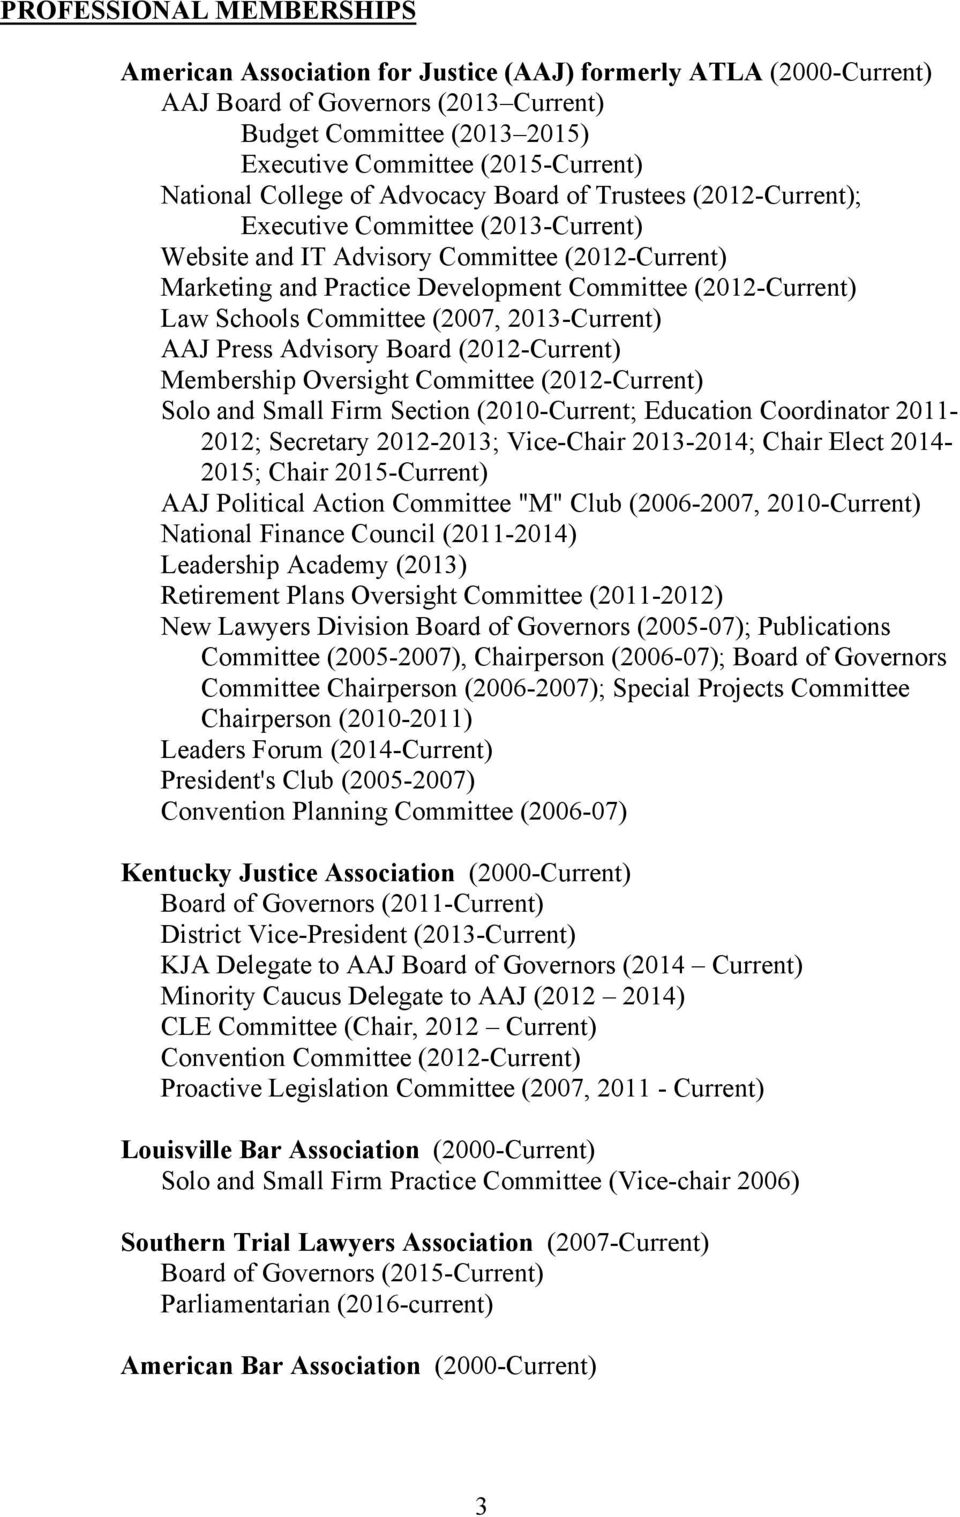 (2012-Current) Law Schools Committee (2007, 2013-Current) AAJ Press Advisory Board (2012-Current) Membership Oversight Committee (2012-Current) Solo and Small Firm Section (2010-Current; Education